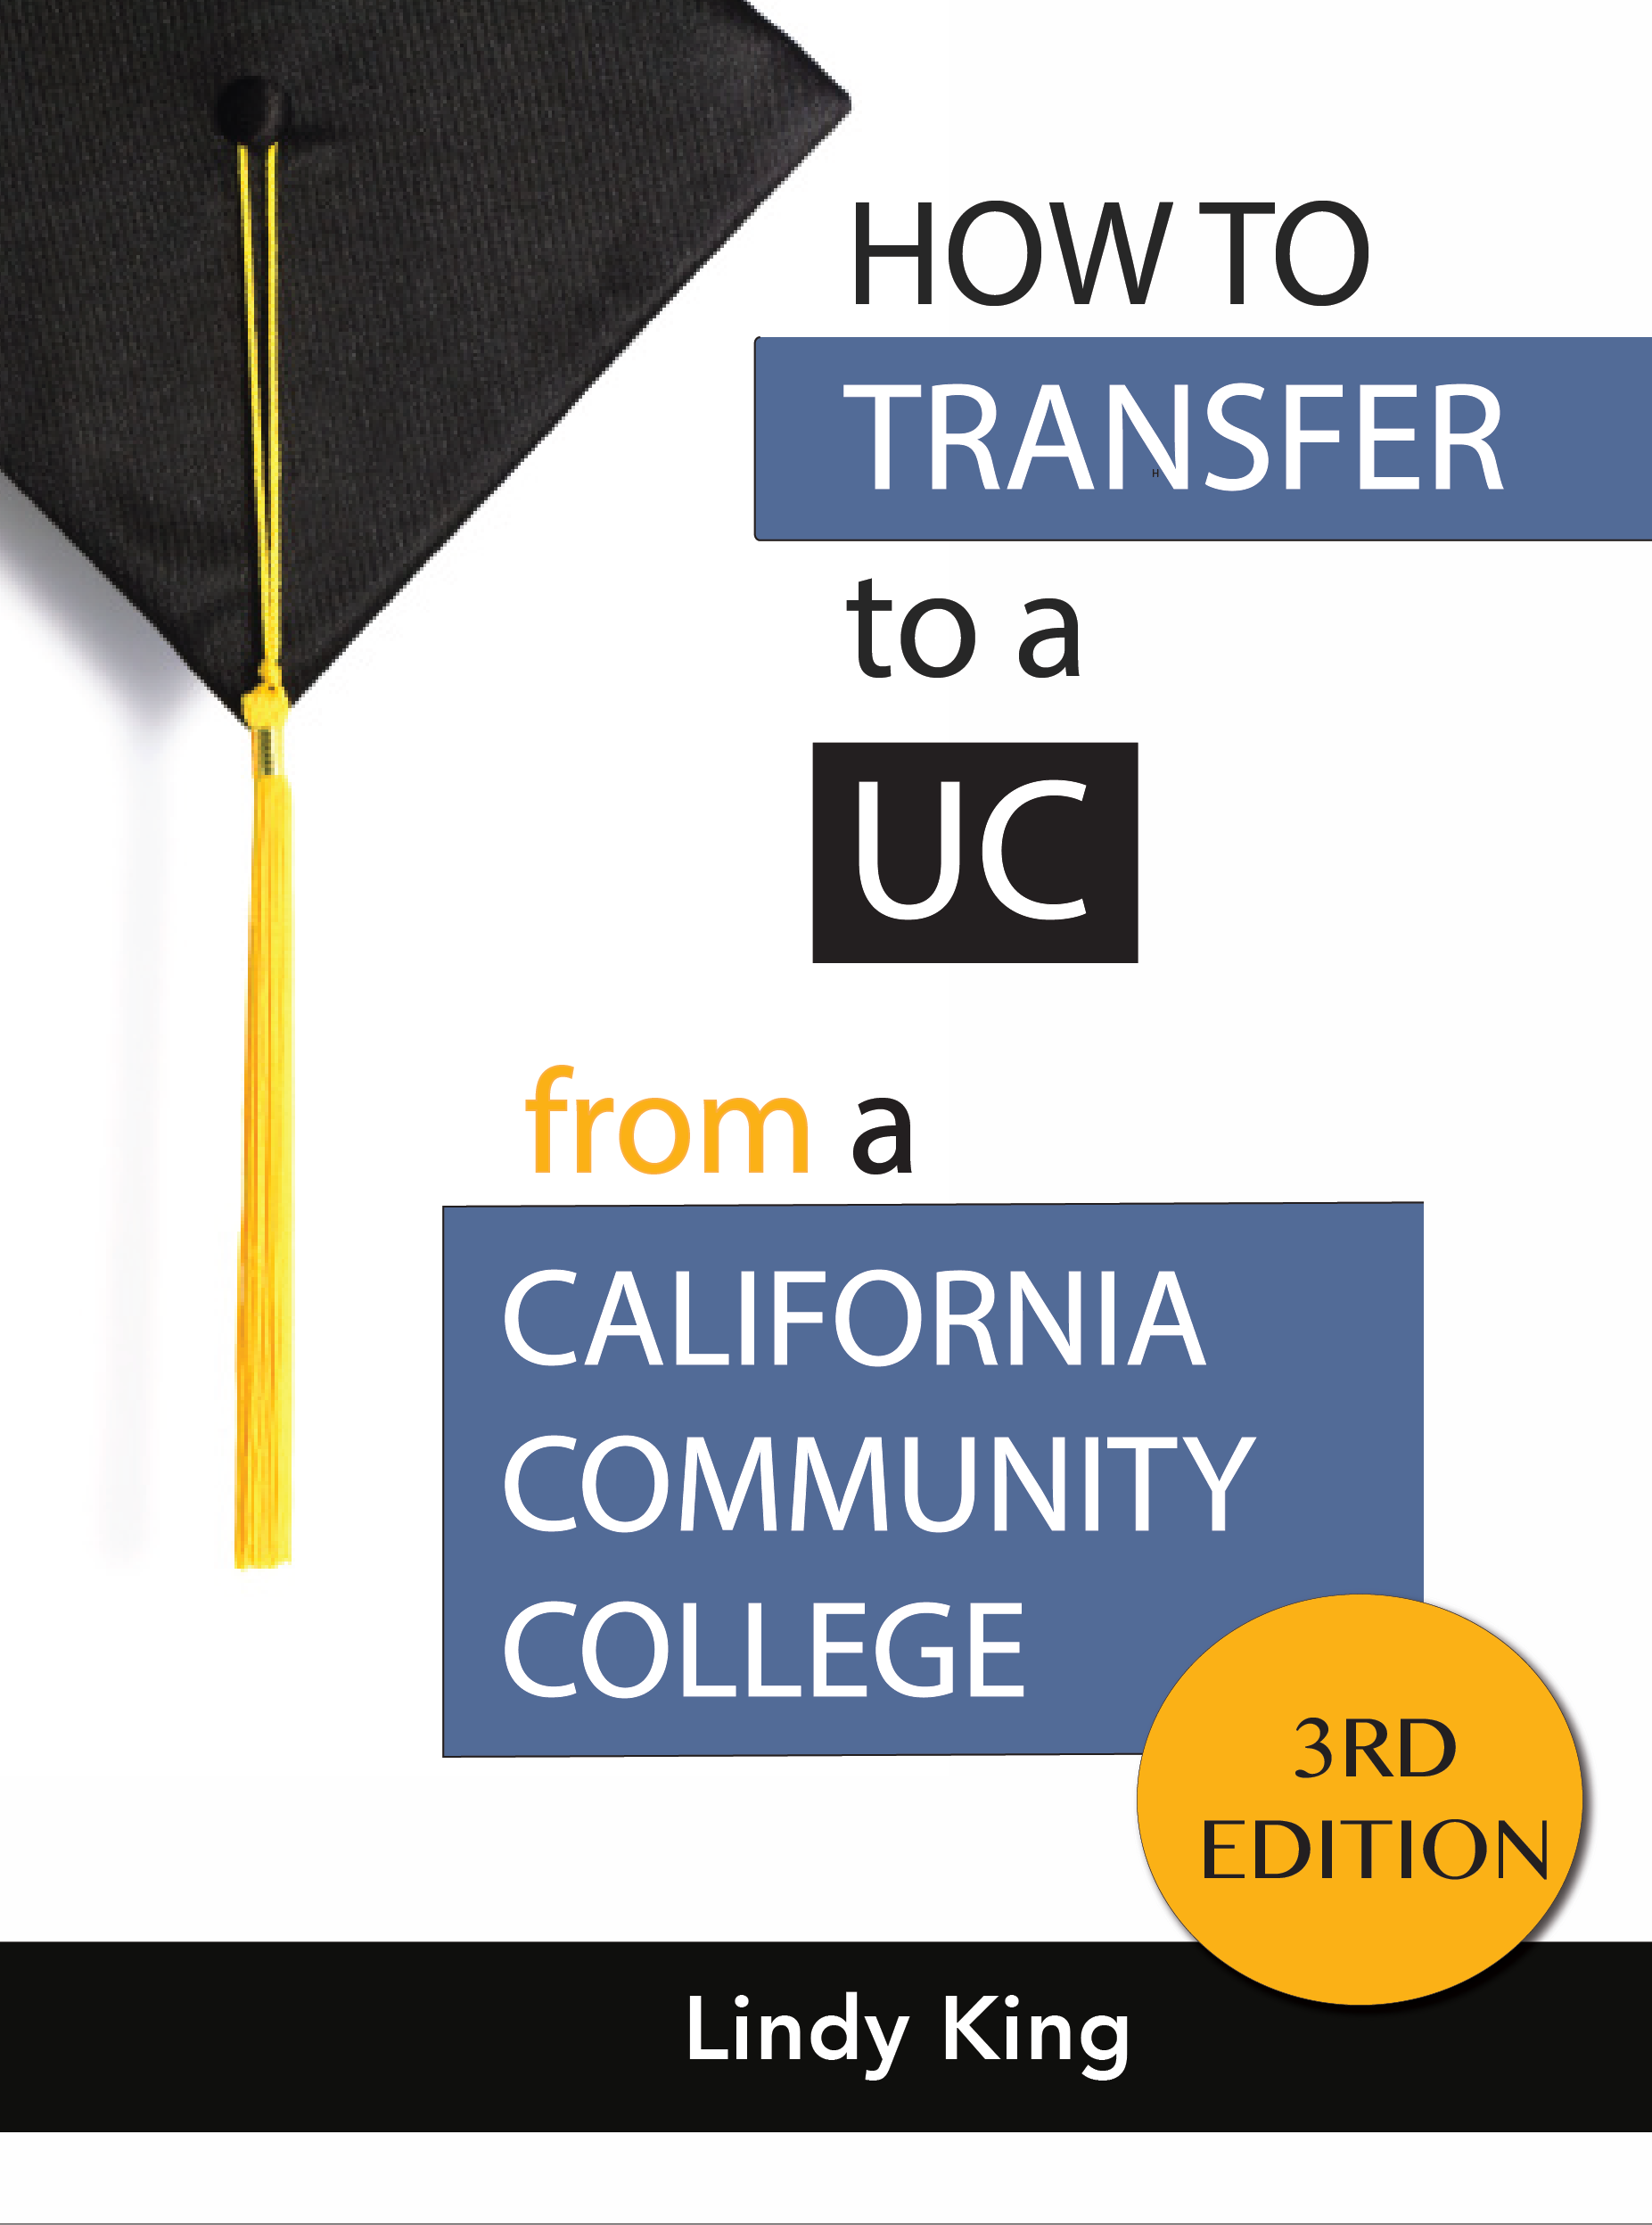 How to Transfer to a UC, 2nd edition